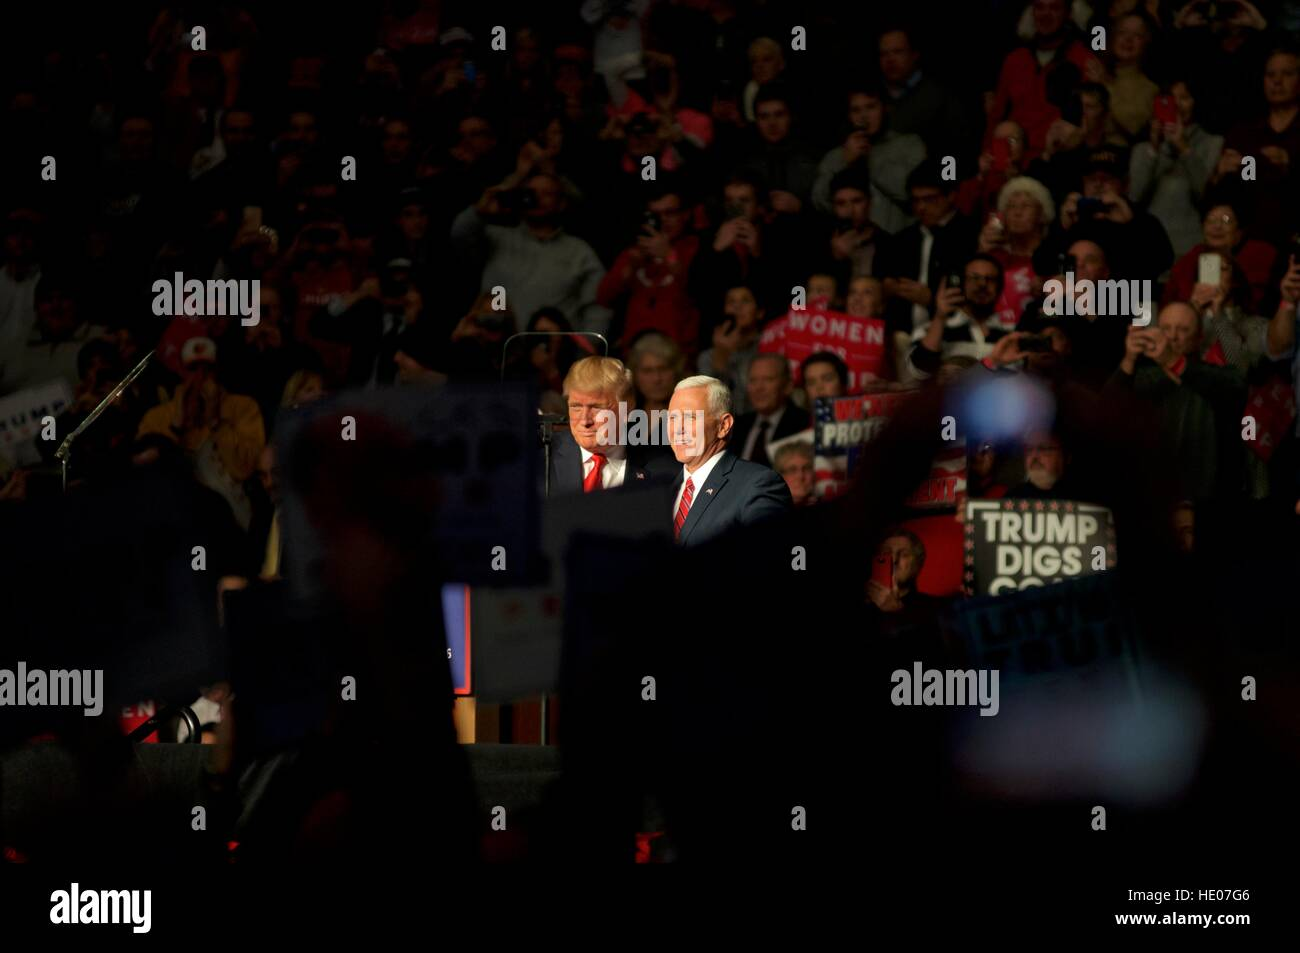 Hershey, Pennsyvlania, USA. 15th Dec, 2016. President-Elect Donald Trump and Vice-President-Elect Mike Pence hold a post-election Thank You Tour event of at the Giant Center in Hershey, PA. Credit: Bastiaan Slabbers/Alamy Live News Stock Photo